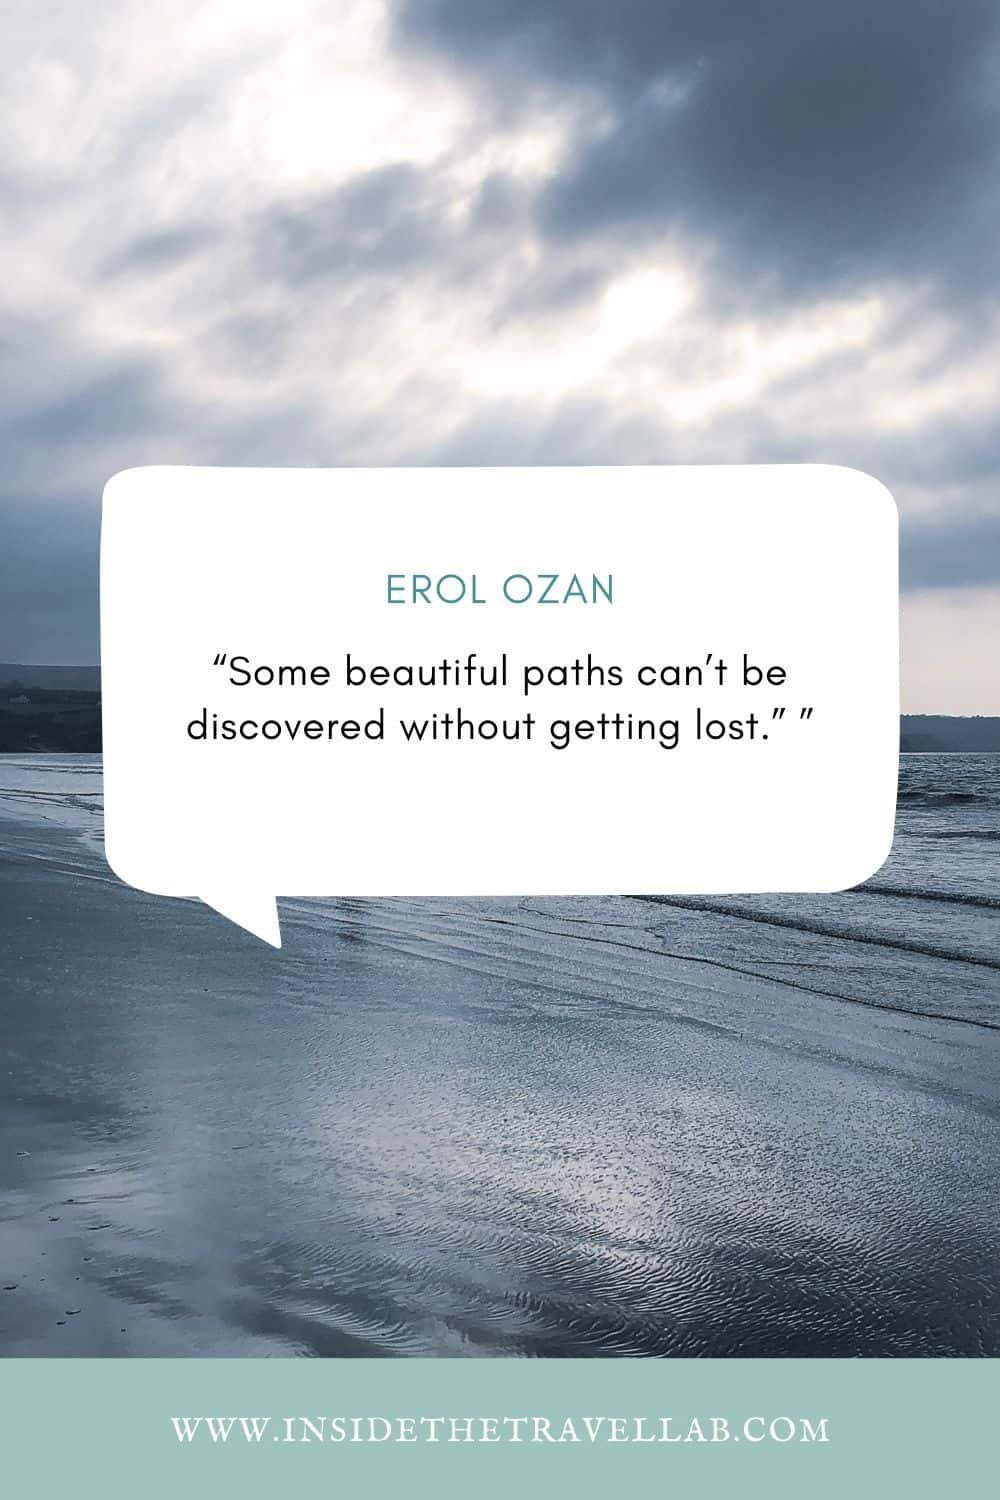 Erol Ozan - some beautiful paths can't be discovered without getting lost